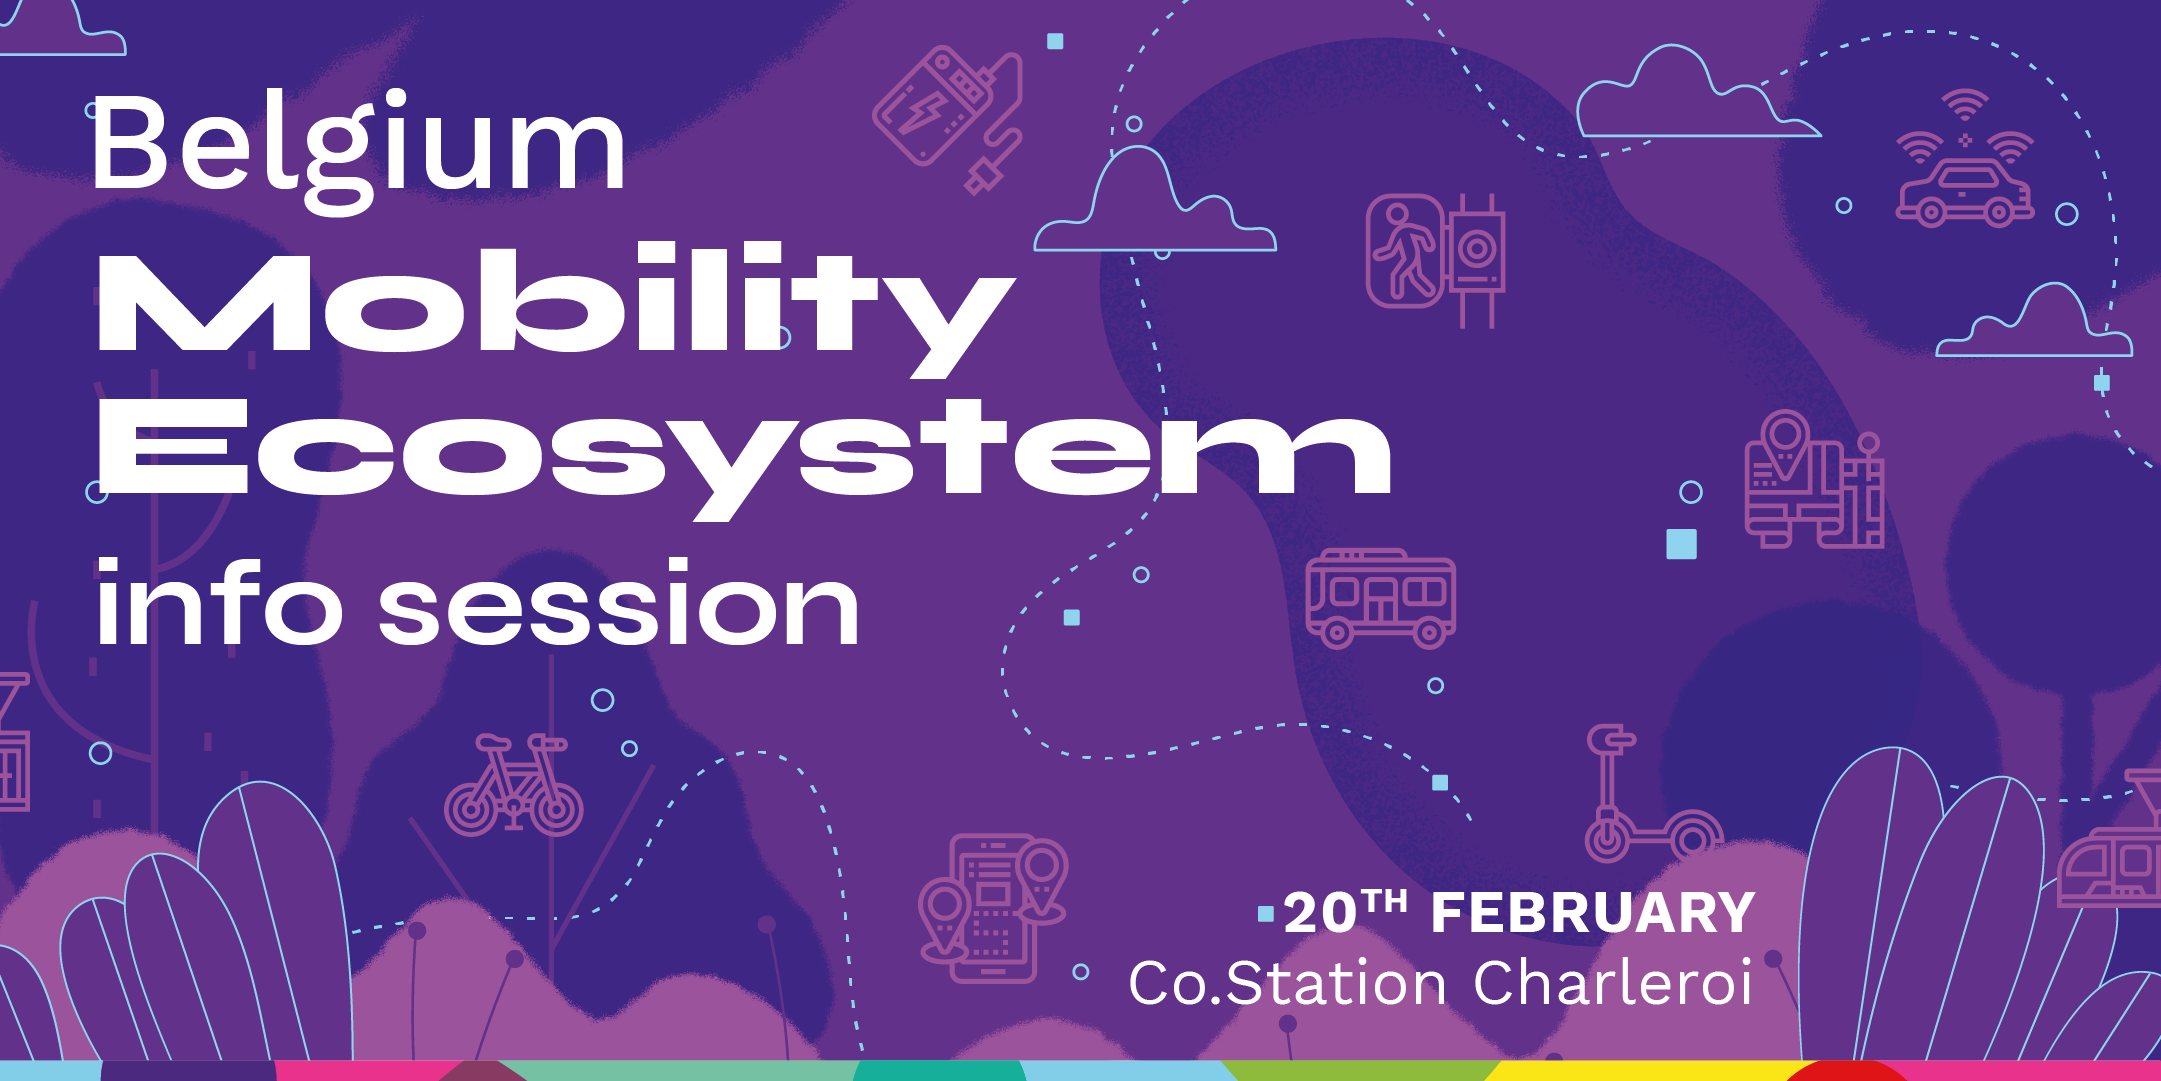 Co.Station Event | Mobility Ecosystem | Info Session | Co.Station Charleroi